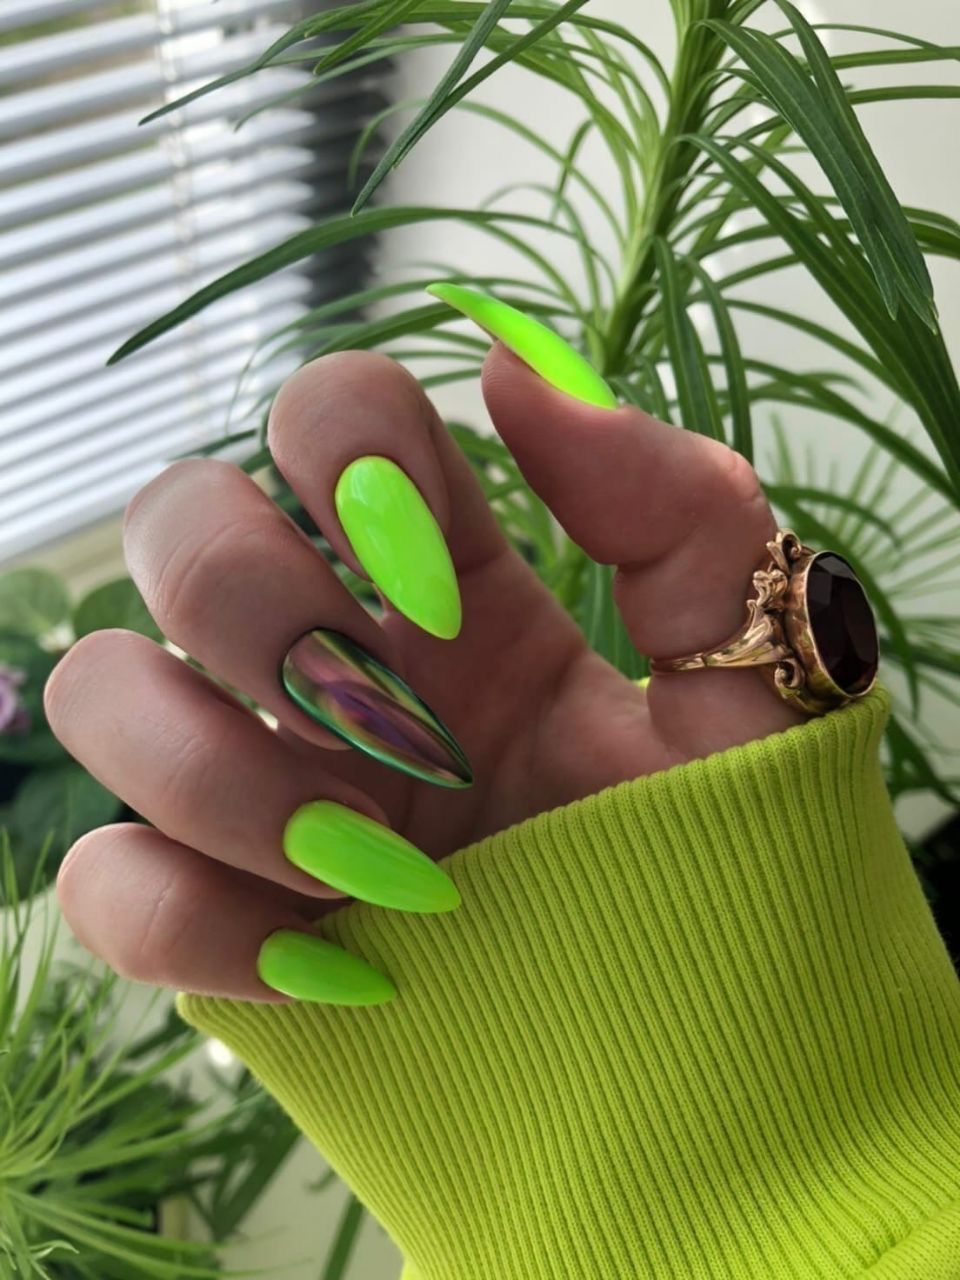 Image in Nail art collection by ᯽𝕔𝕒𝕟𝕕𝕪 𝕗𝕝𝕠𝕤𝕤᯽